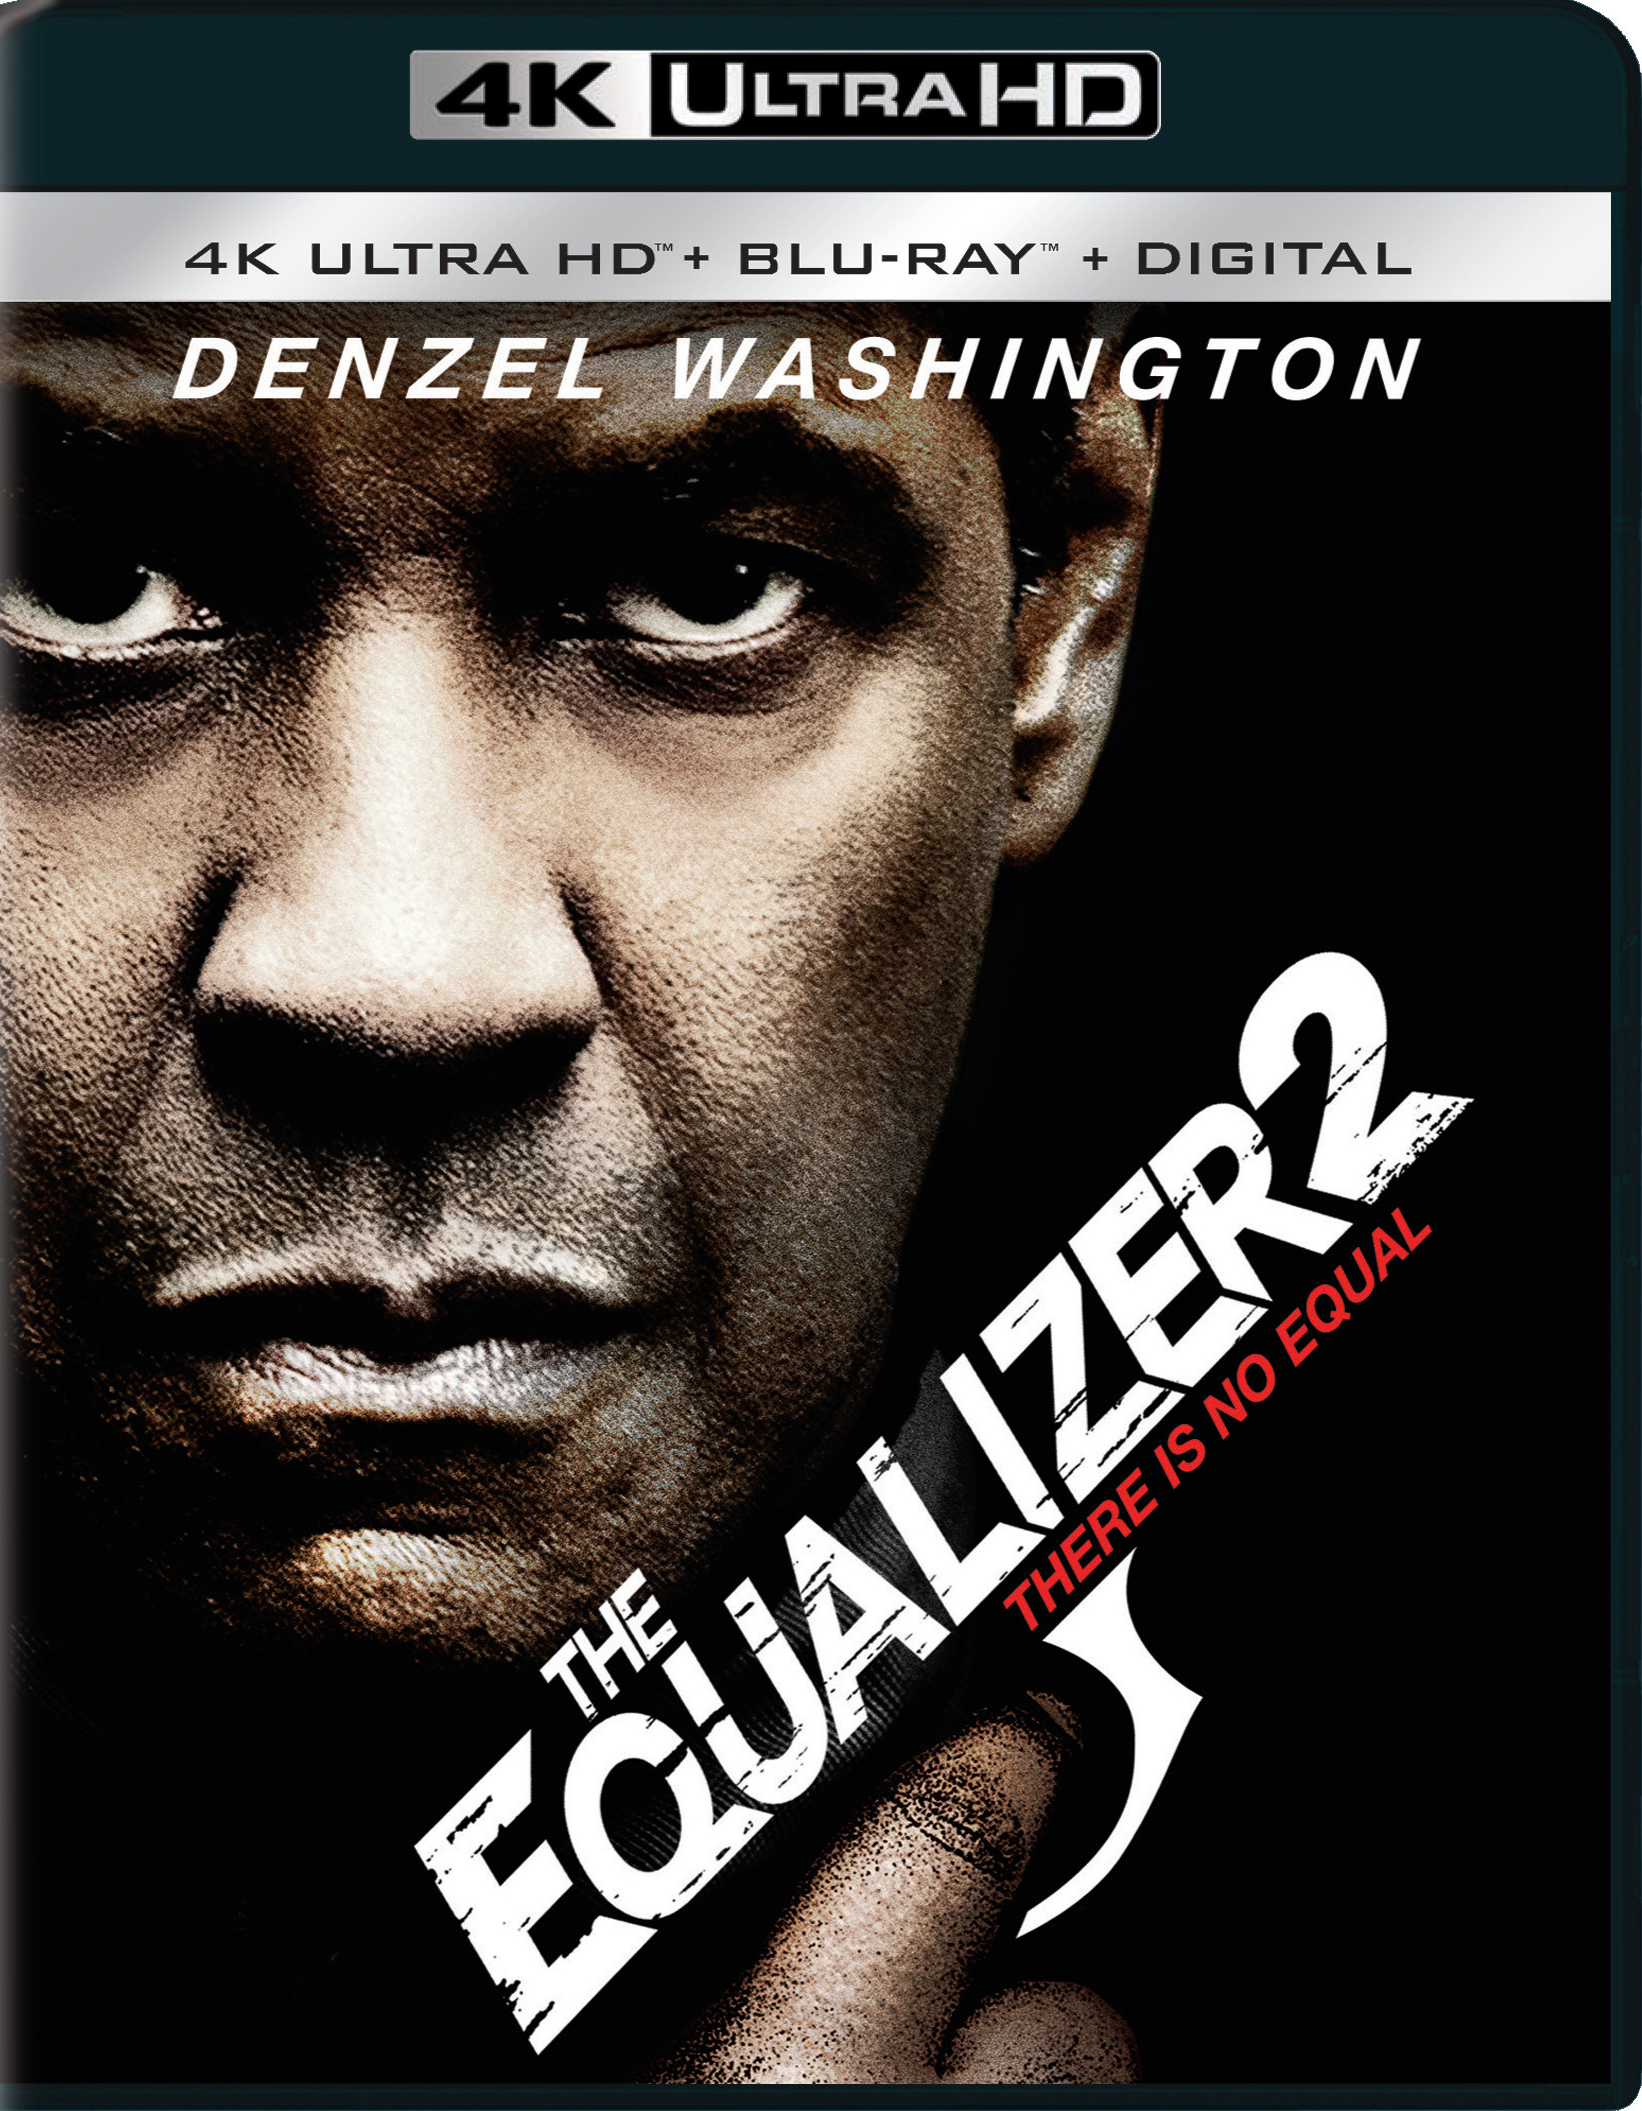 THE EQUALIZER 2 2018 (4K ULTRA HD)